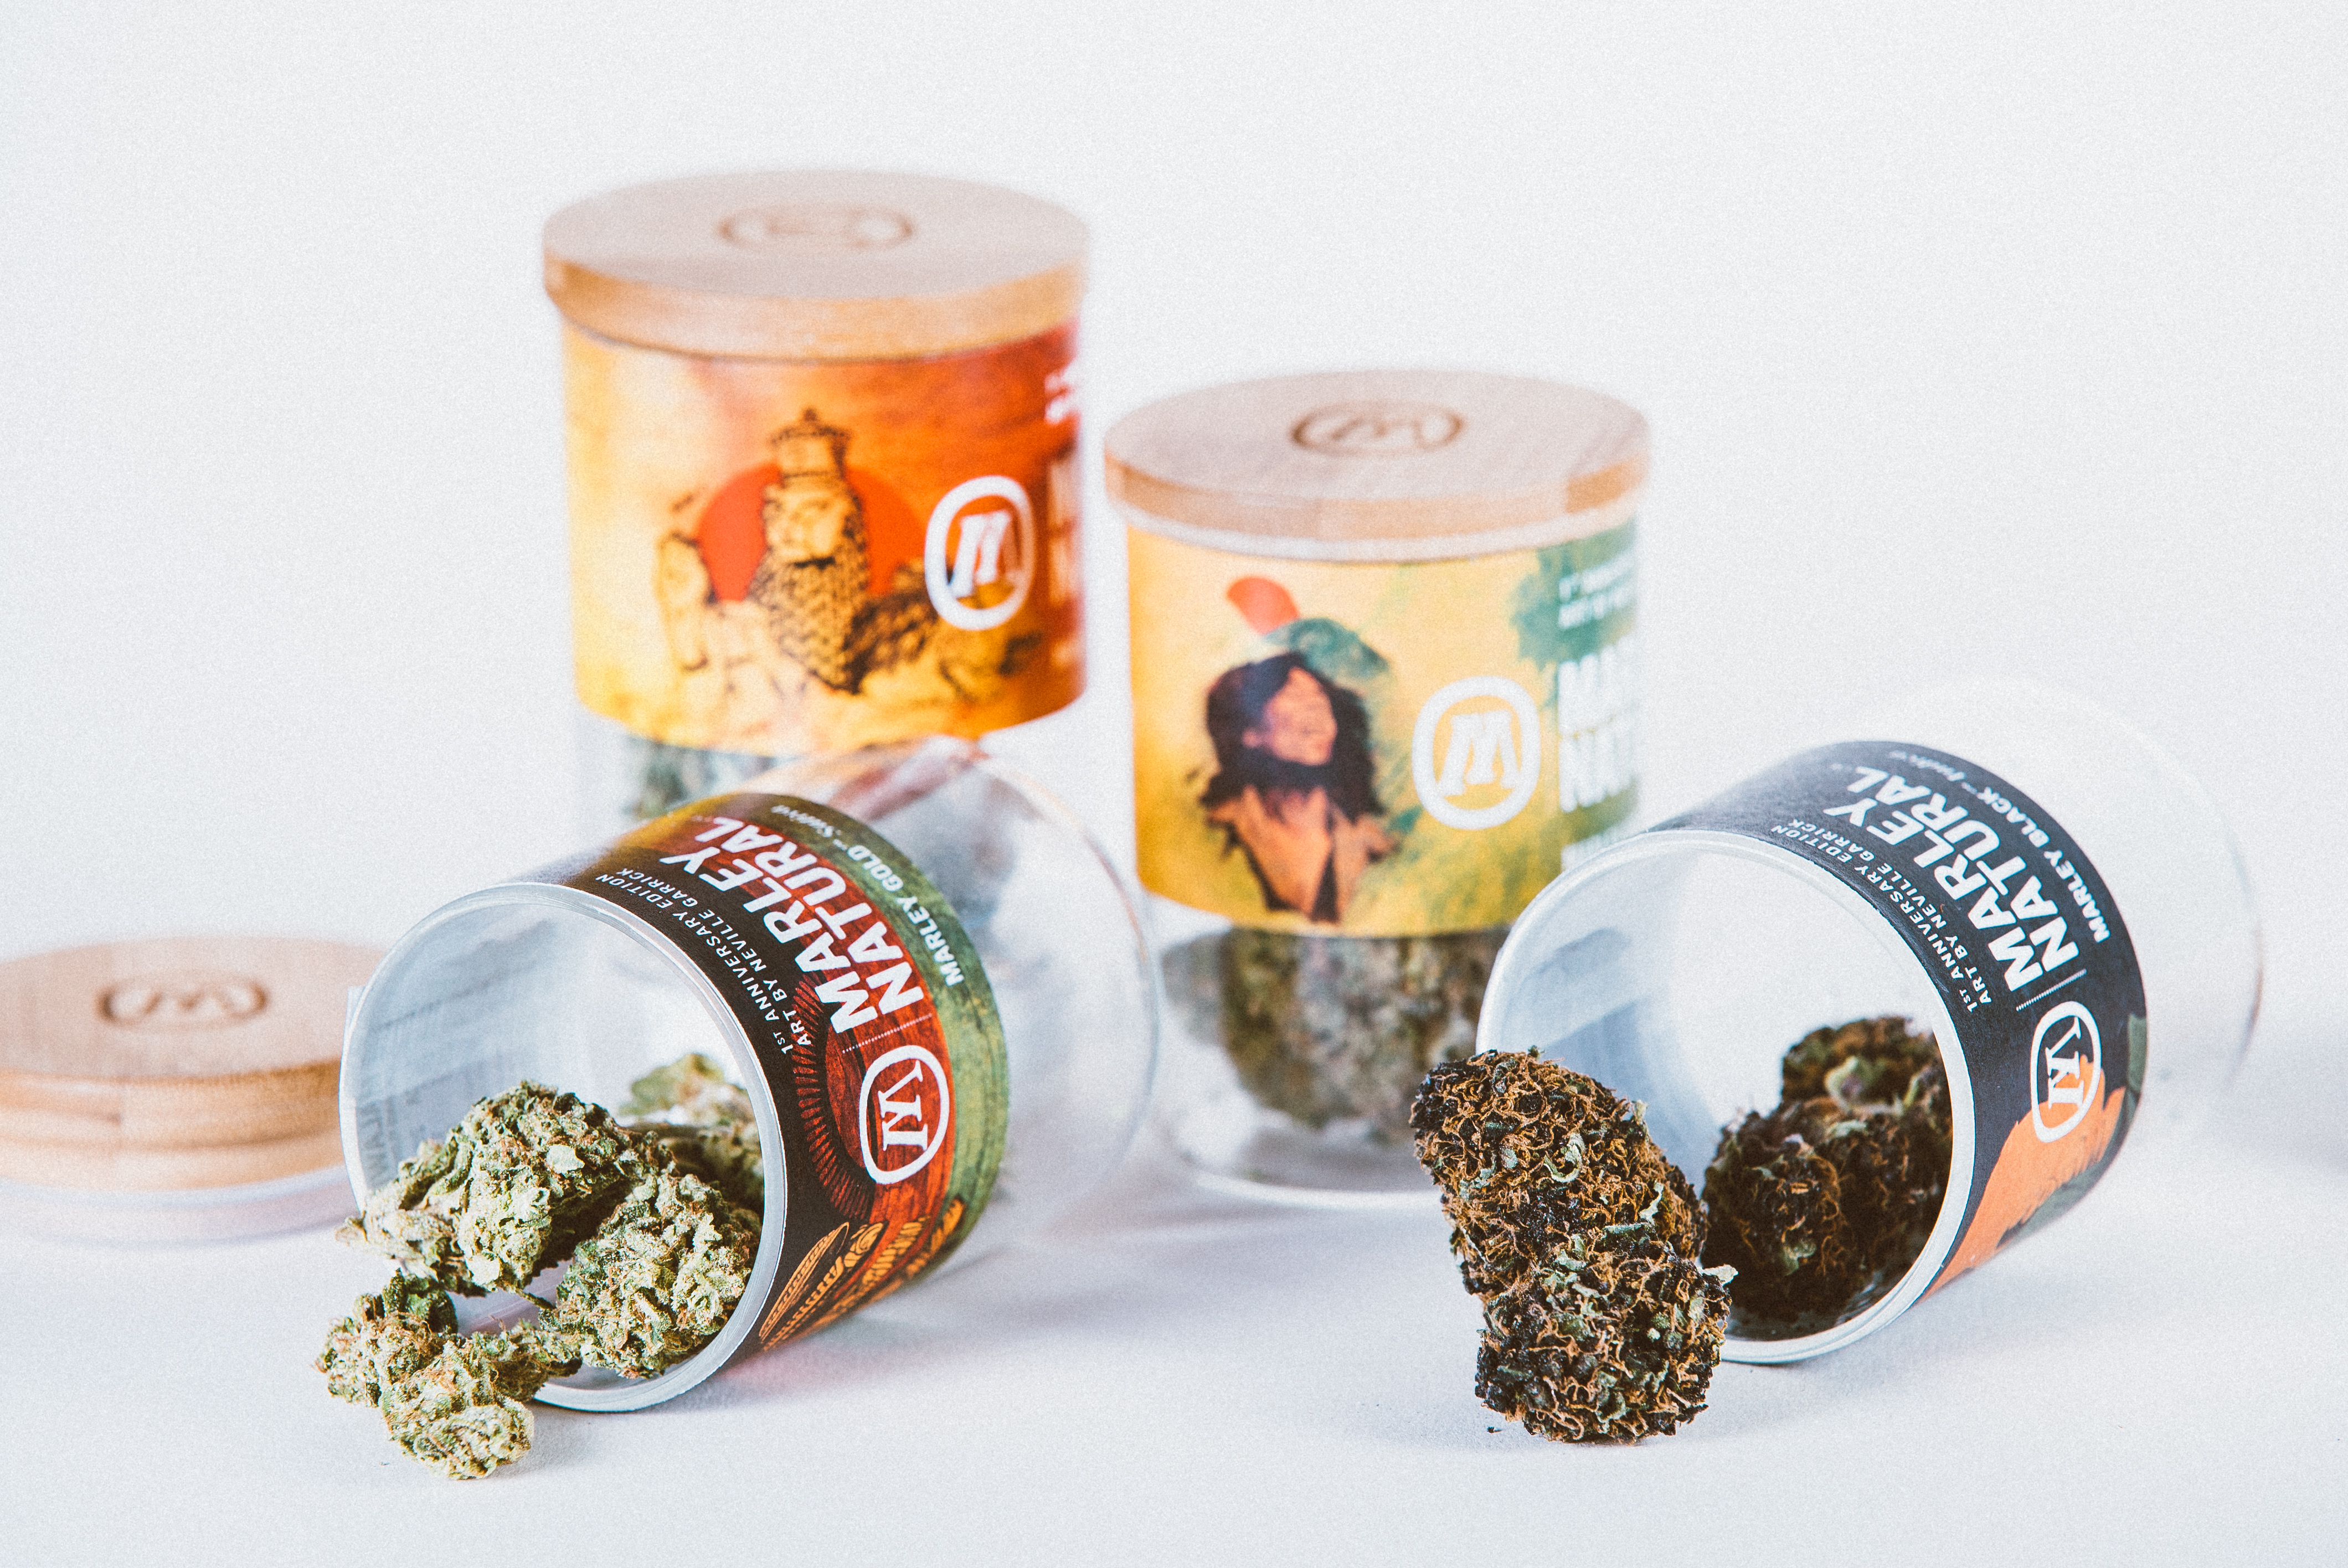 Marley Natural cannabis flower is hand-selected from local farms run by experienced growers committed to sustainability. (Photo: Business Wire)